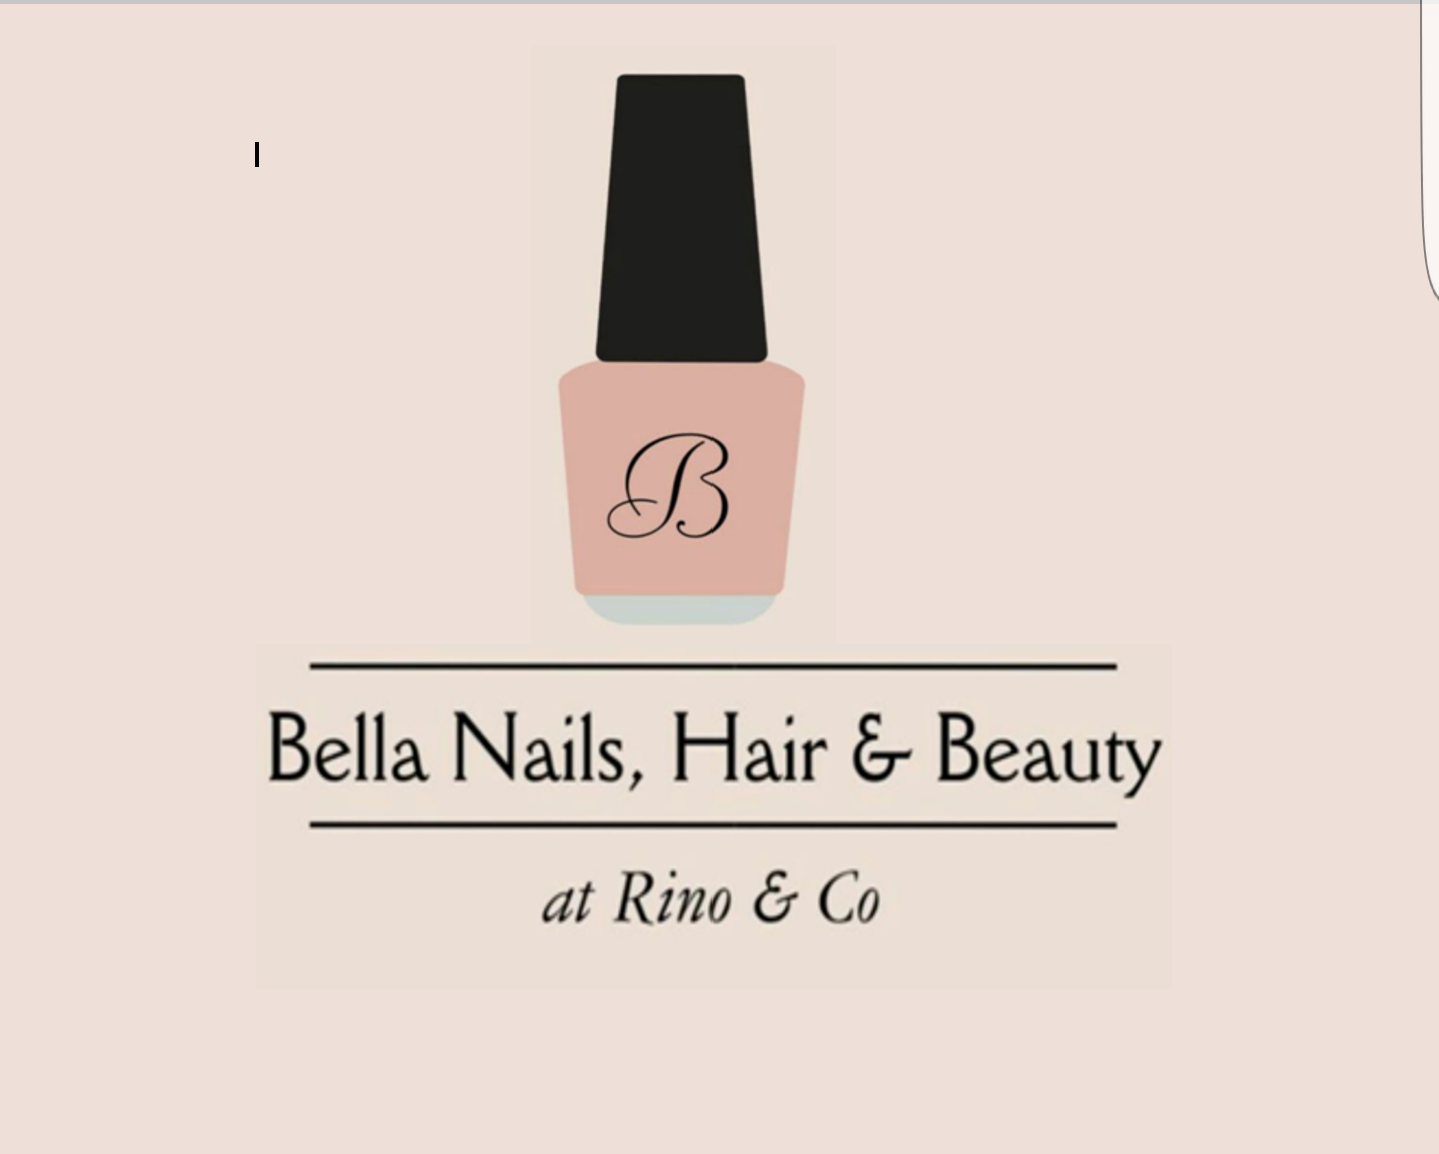 Bella Nails Hair and Beauty at Rino & Co